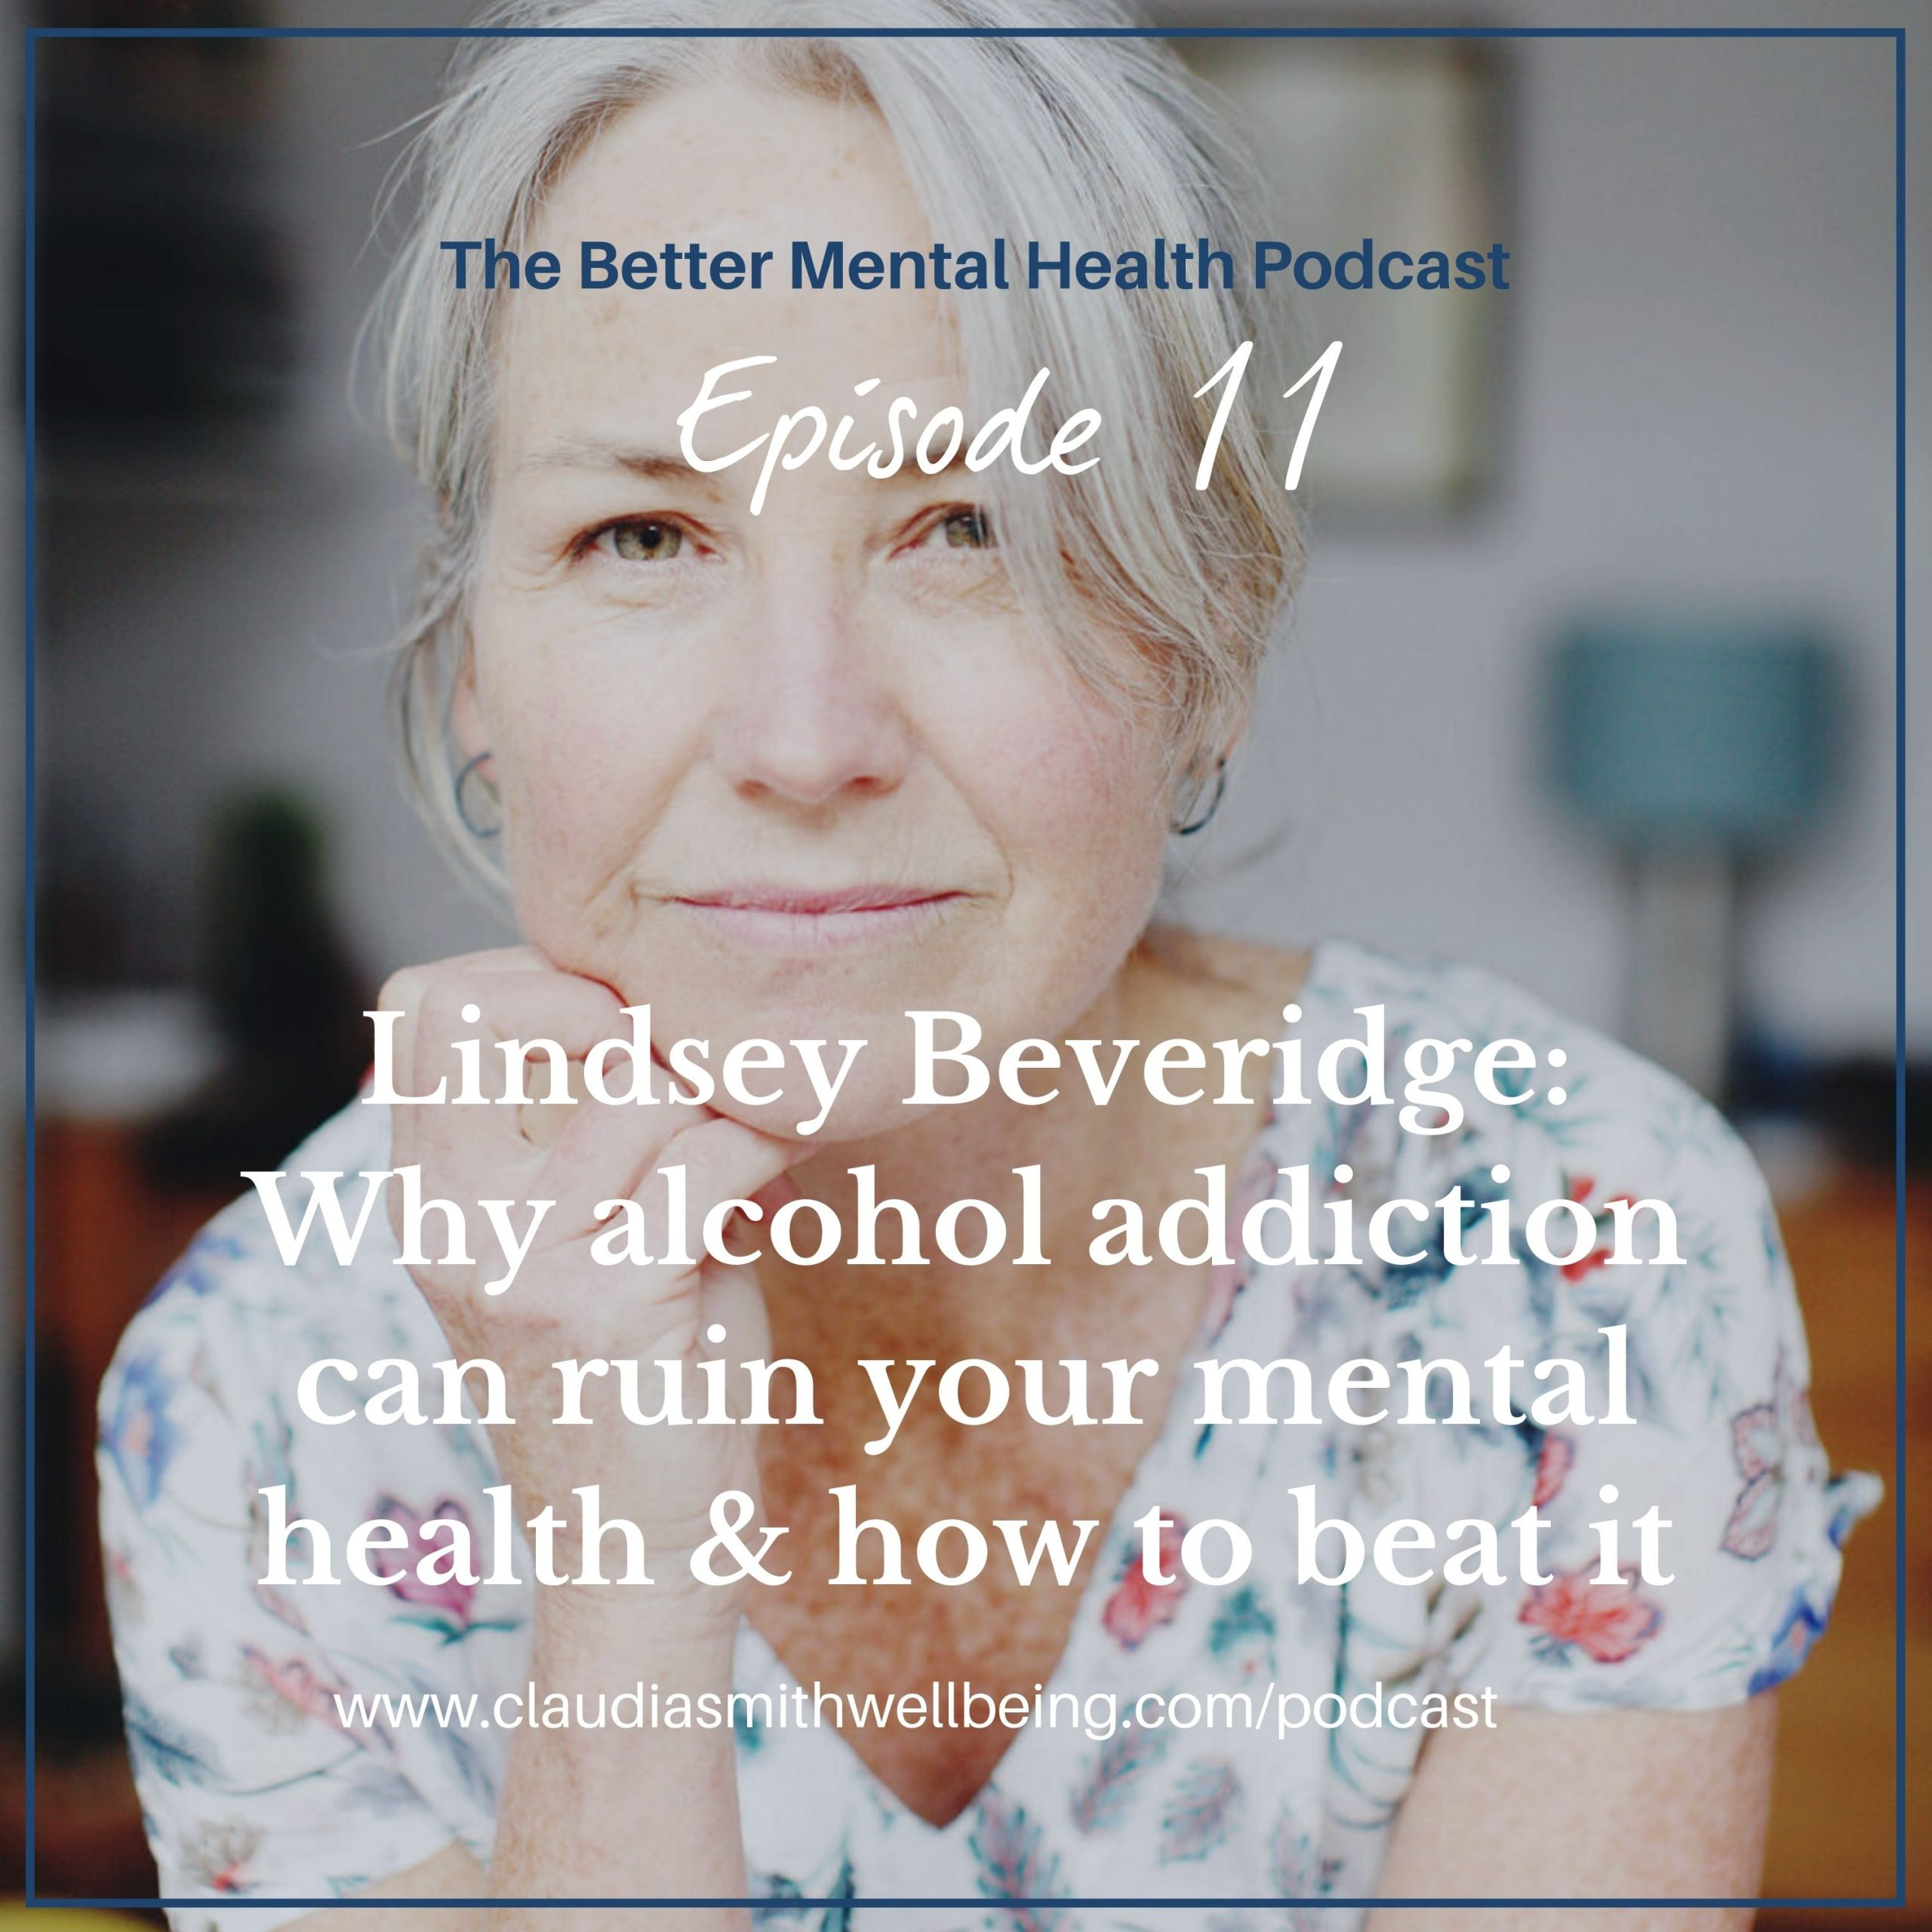 Ep. 11: Why alcohol addiction can ruin your mental health & how to beat it